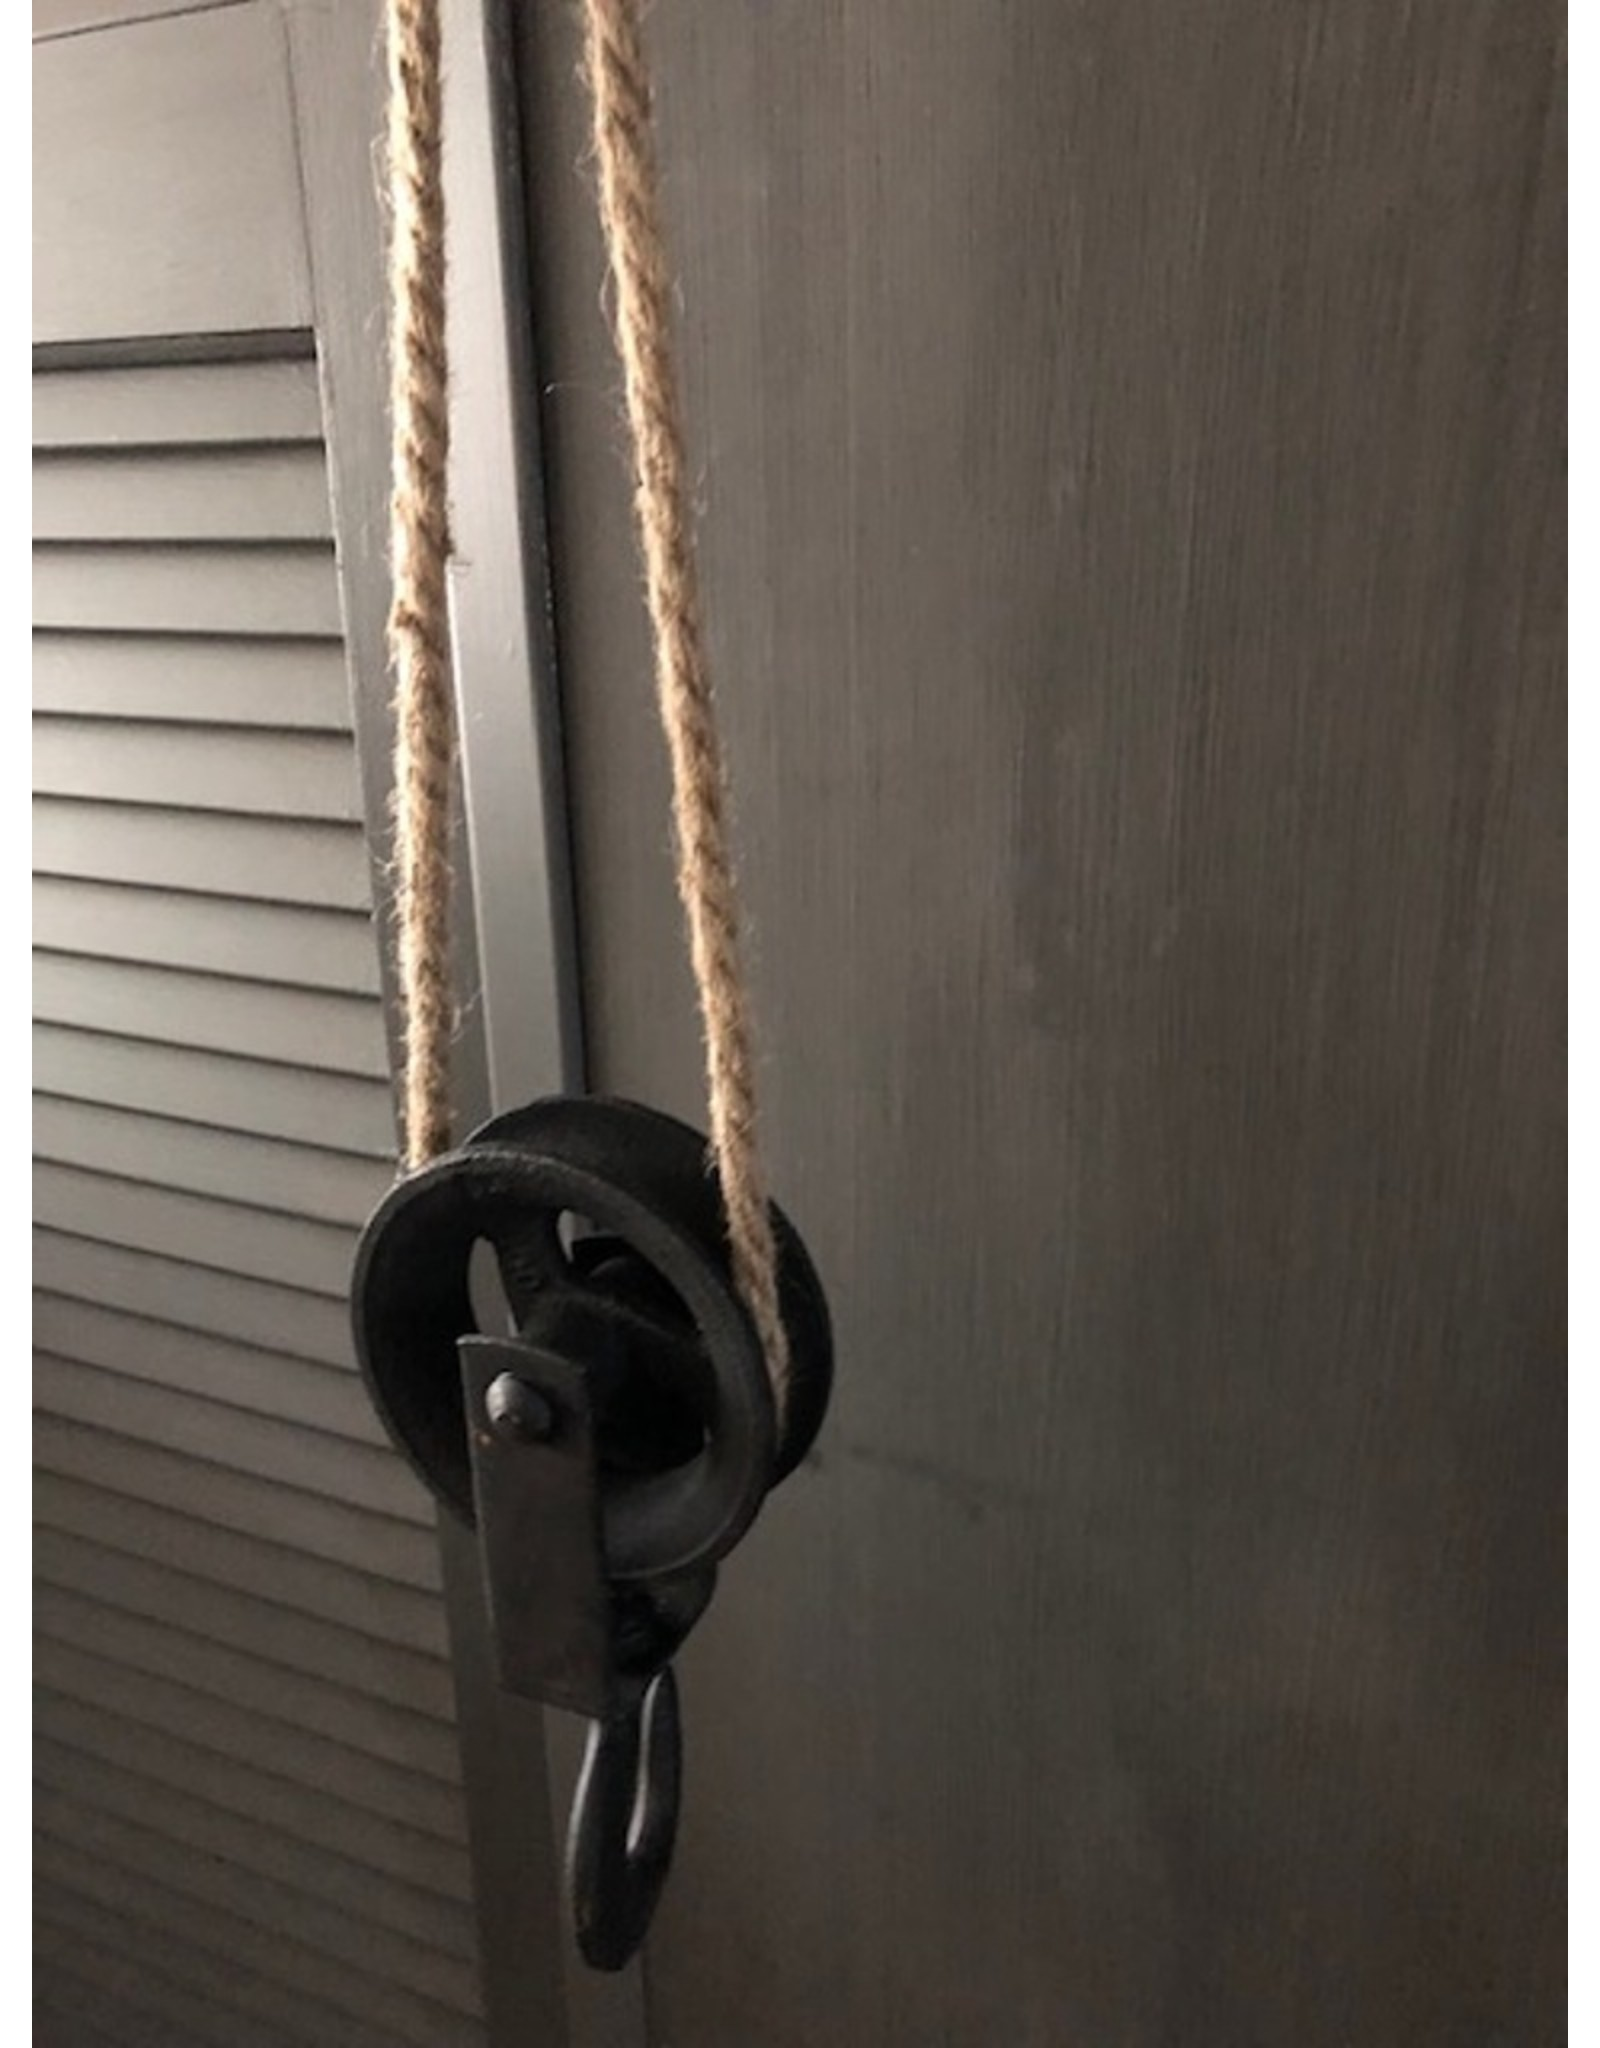 Trukado Miscellaneous - Iron Pulley on Jutte Rope